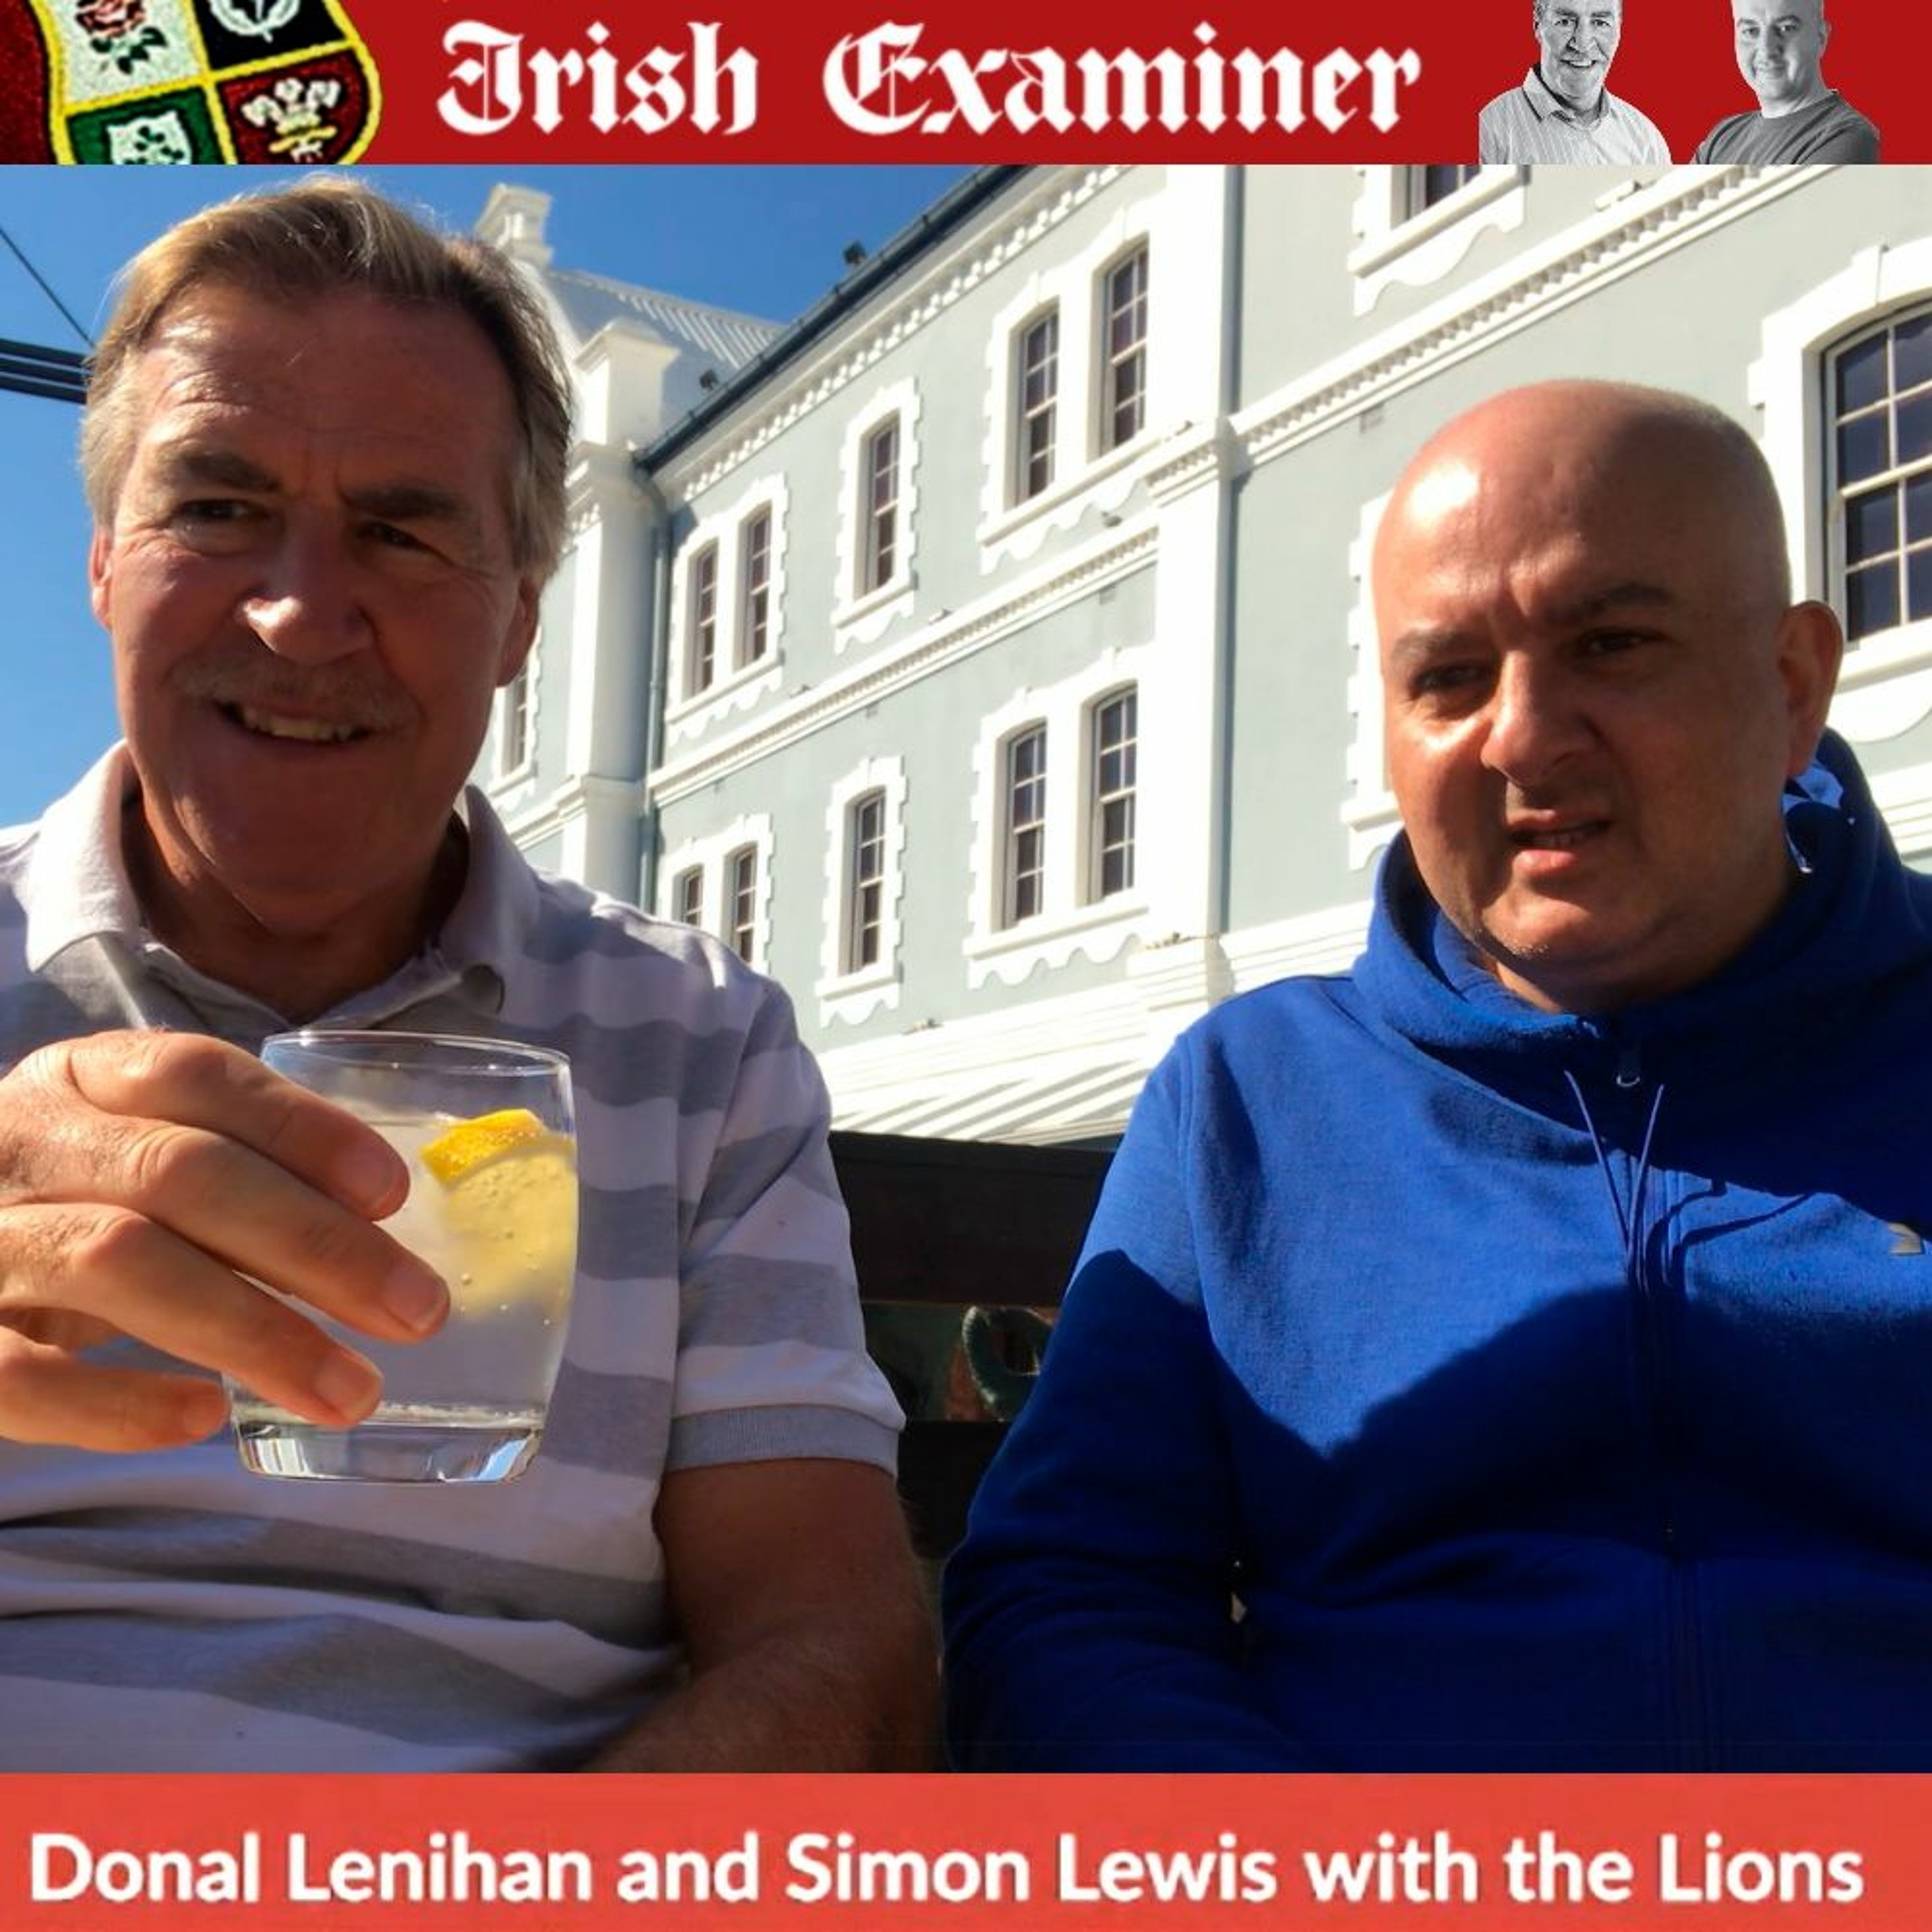 3: Lenihan & Lewis with the Lions - Vitally important to finish this tour on a positive